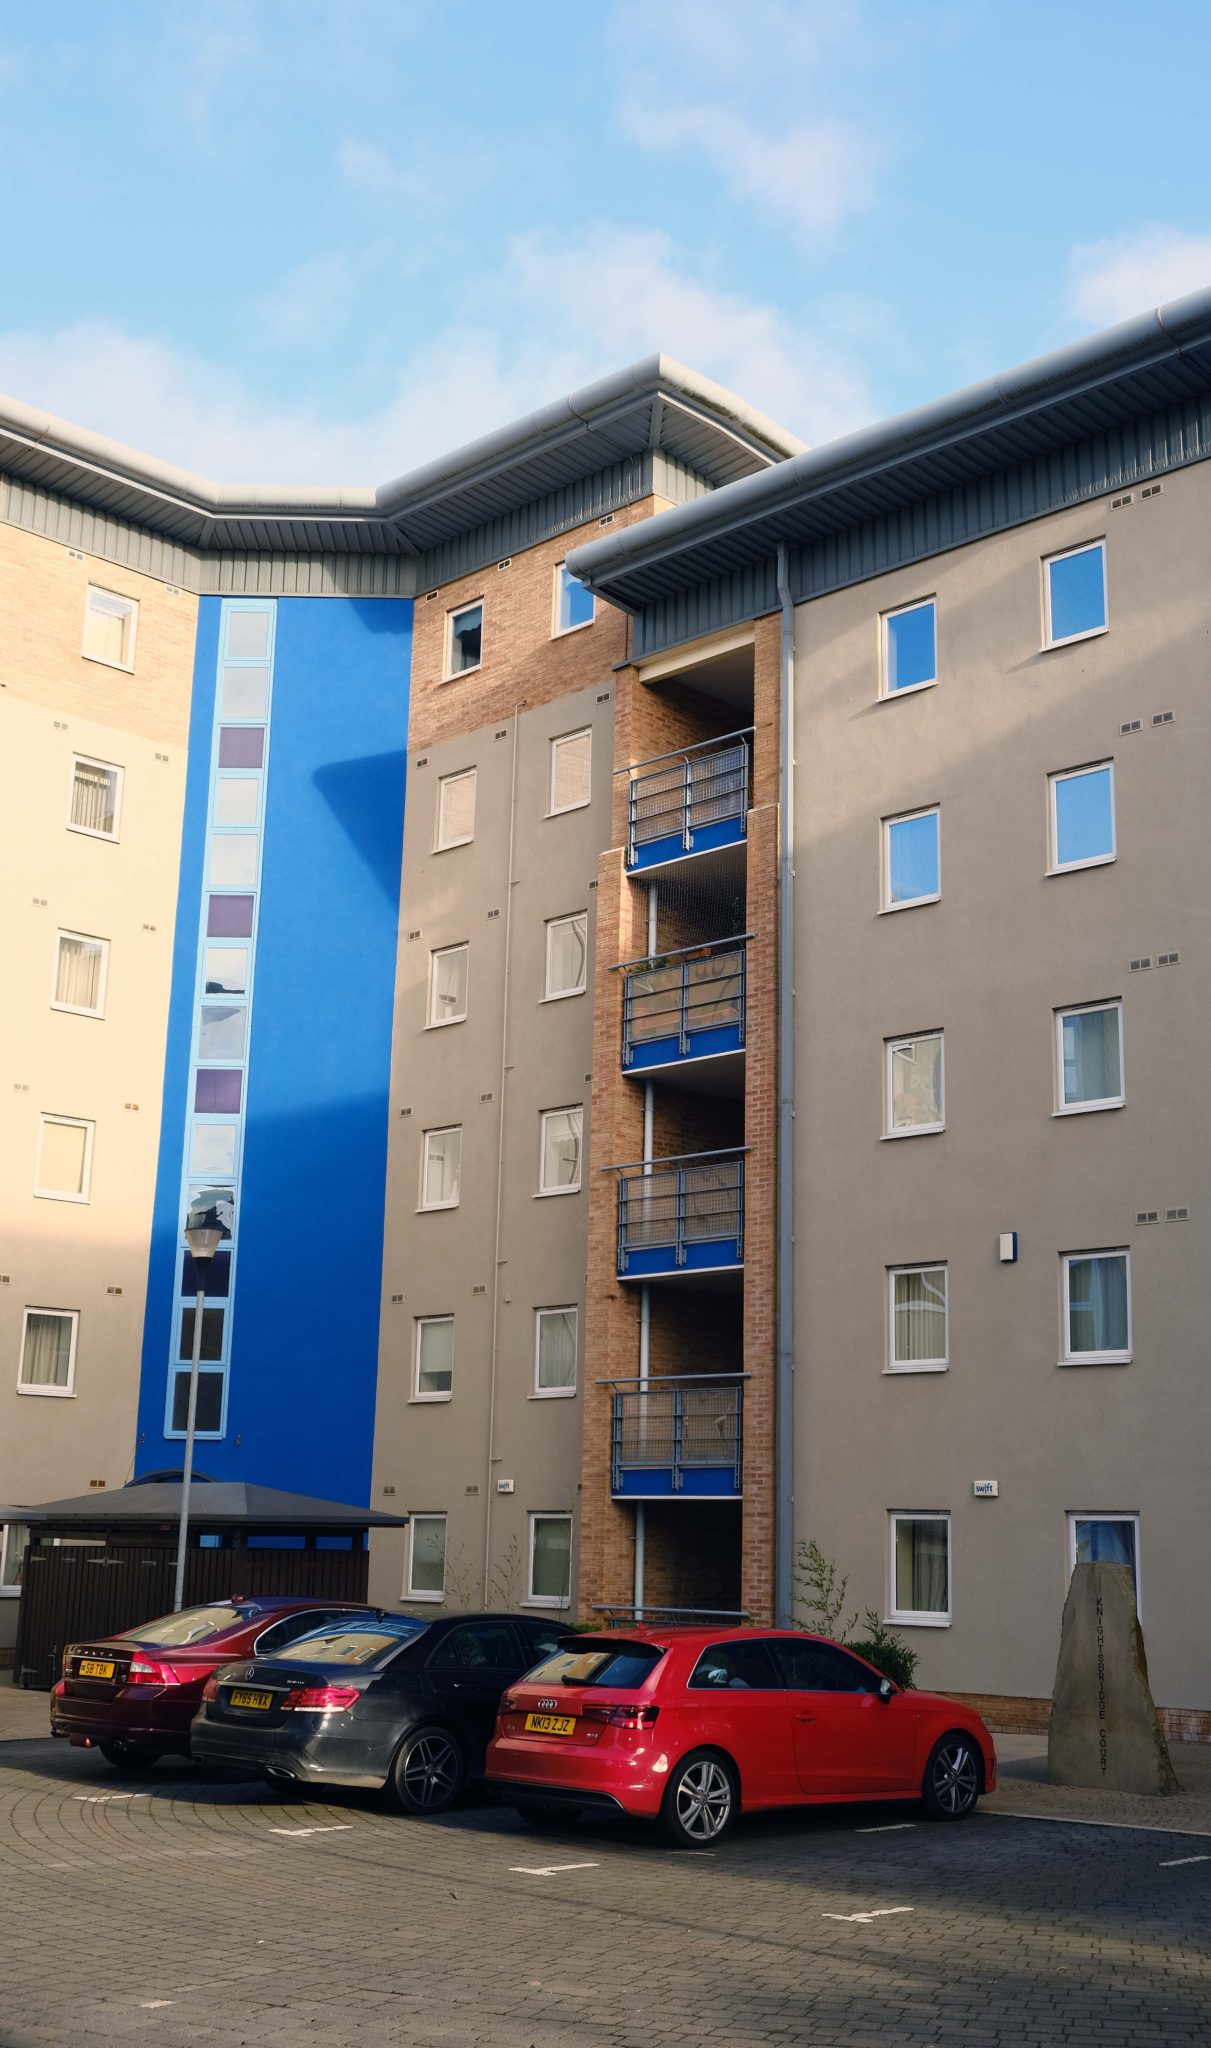 Short-Let-Accommodation-Newcastle-UK-available-Now!-Book-Serviced-Apartments-in-North-England-today-at-cheaper-than-a-Hotel!-Parking,-Wifi,-All-bills-incl!-Urban-Stay